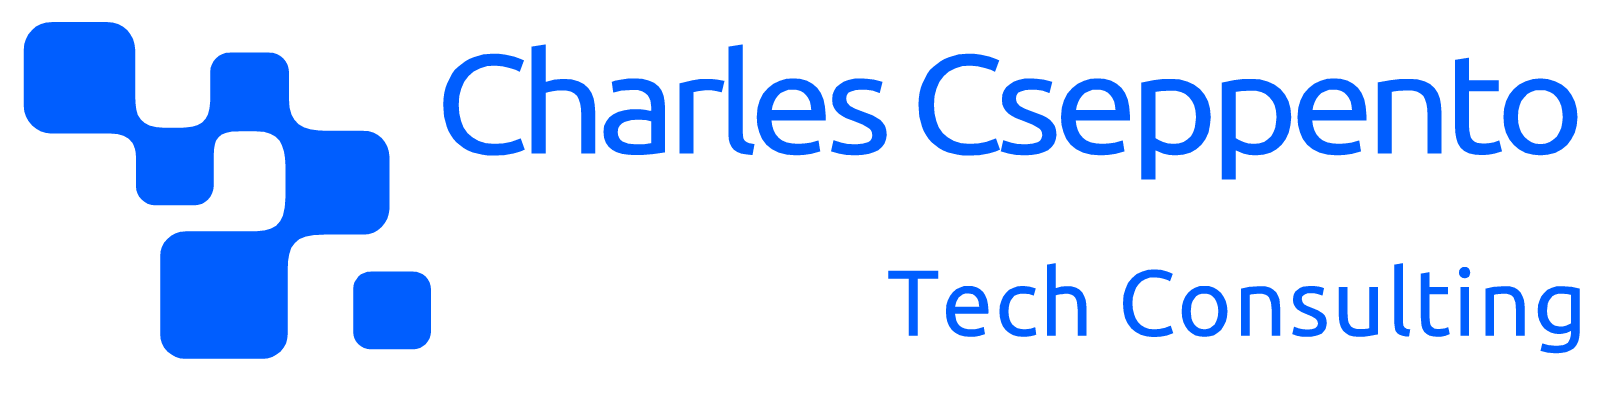 Charles Cseppento Technical Consulting